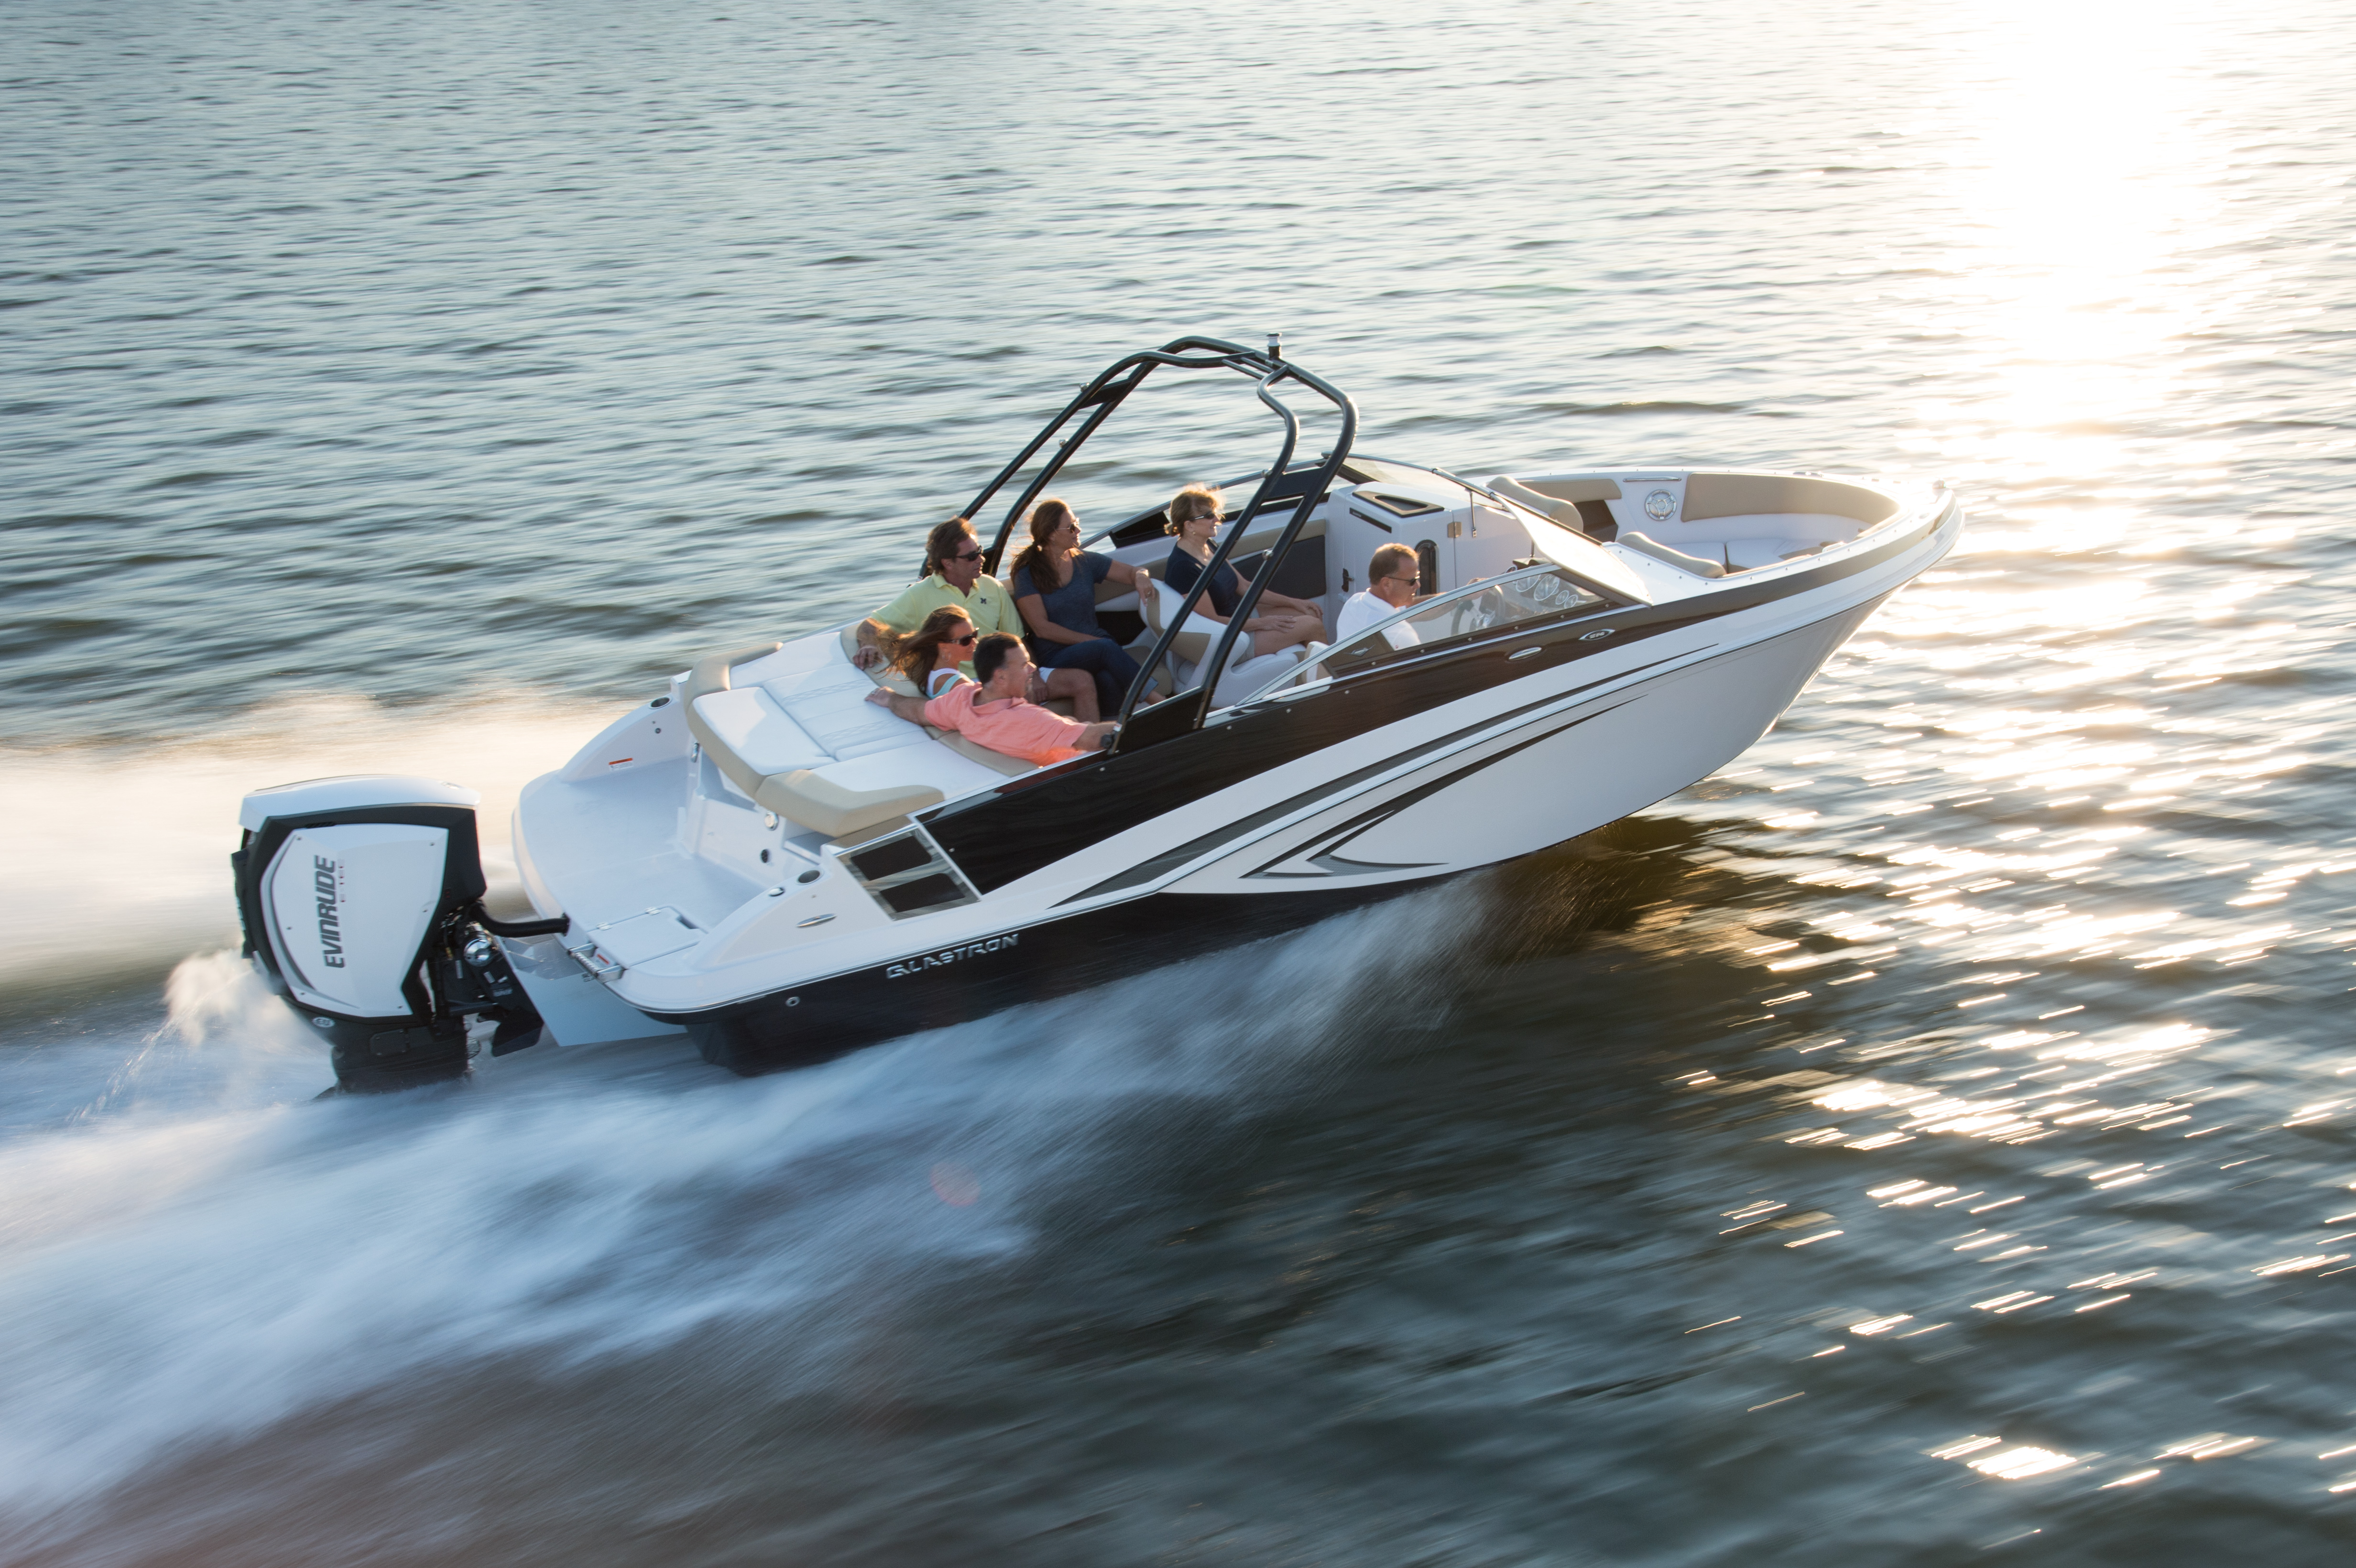 Upcoming Glastron Events & Attended Boat Shows